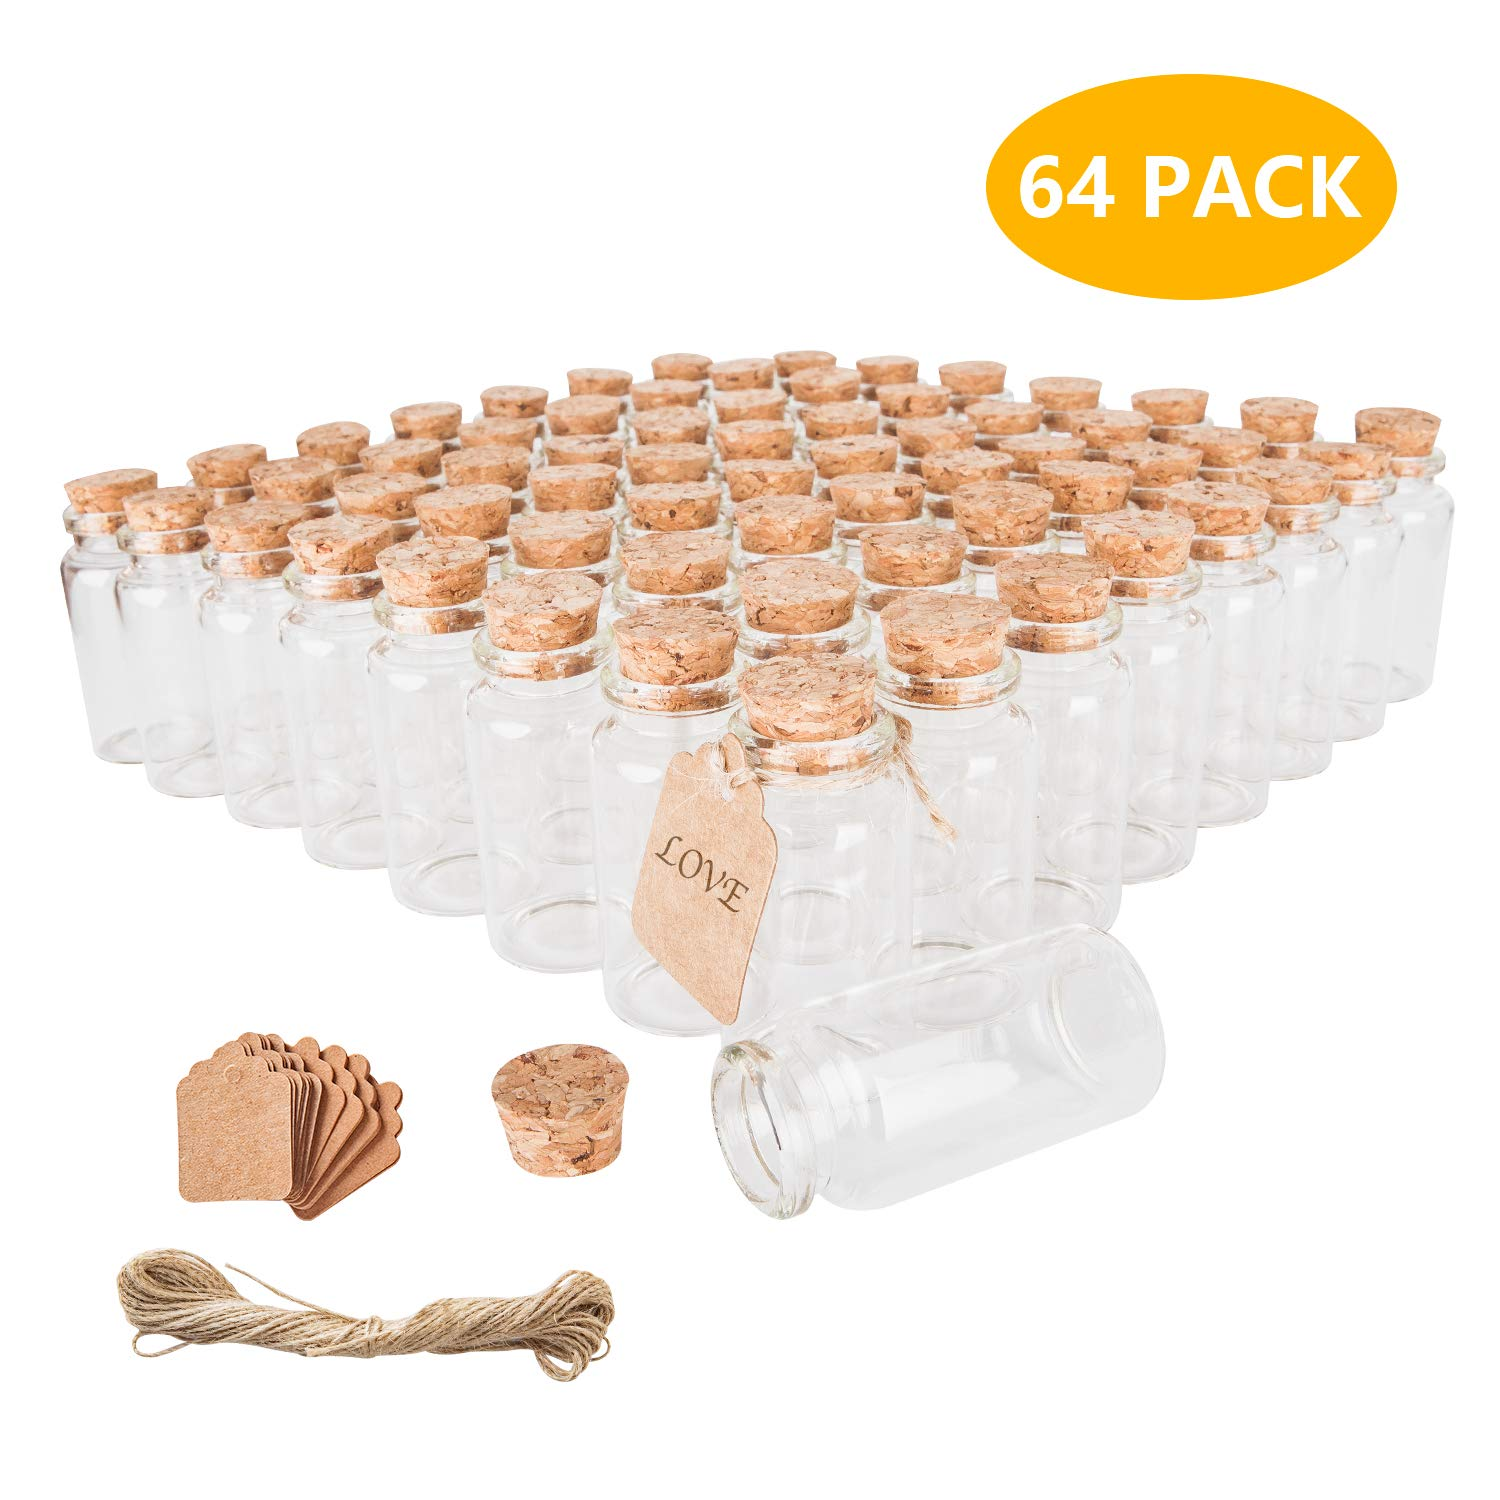 30ml Glass Baby Bottles with Cork Lids, Small Jars with Personalized Label Tags and String, Mini Bottles of Candy, Wedding Favors for Guests, Set of 64 by Brajttt